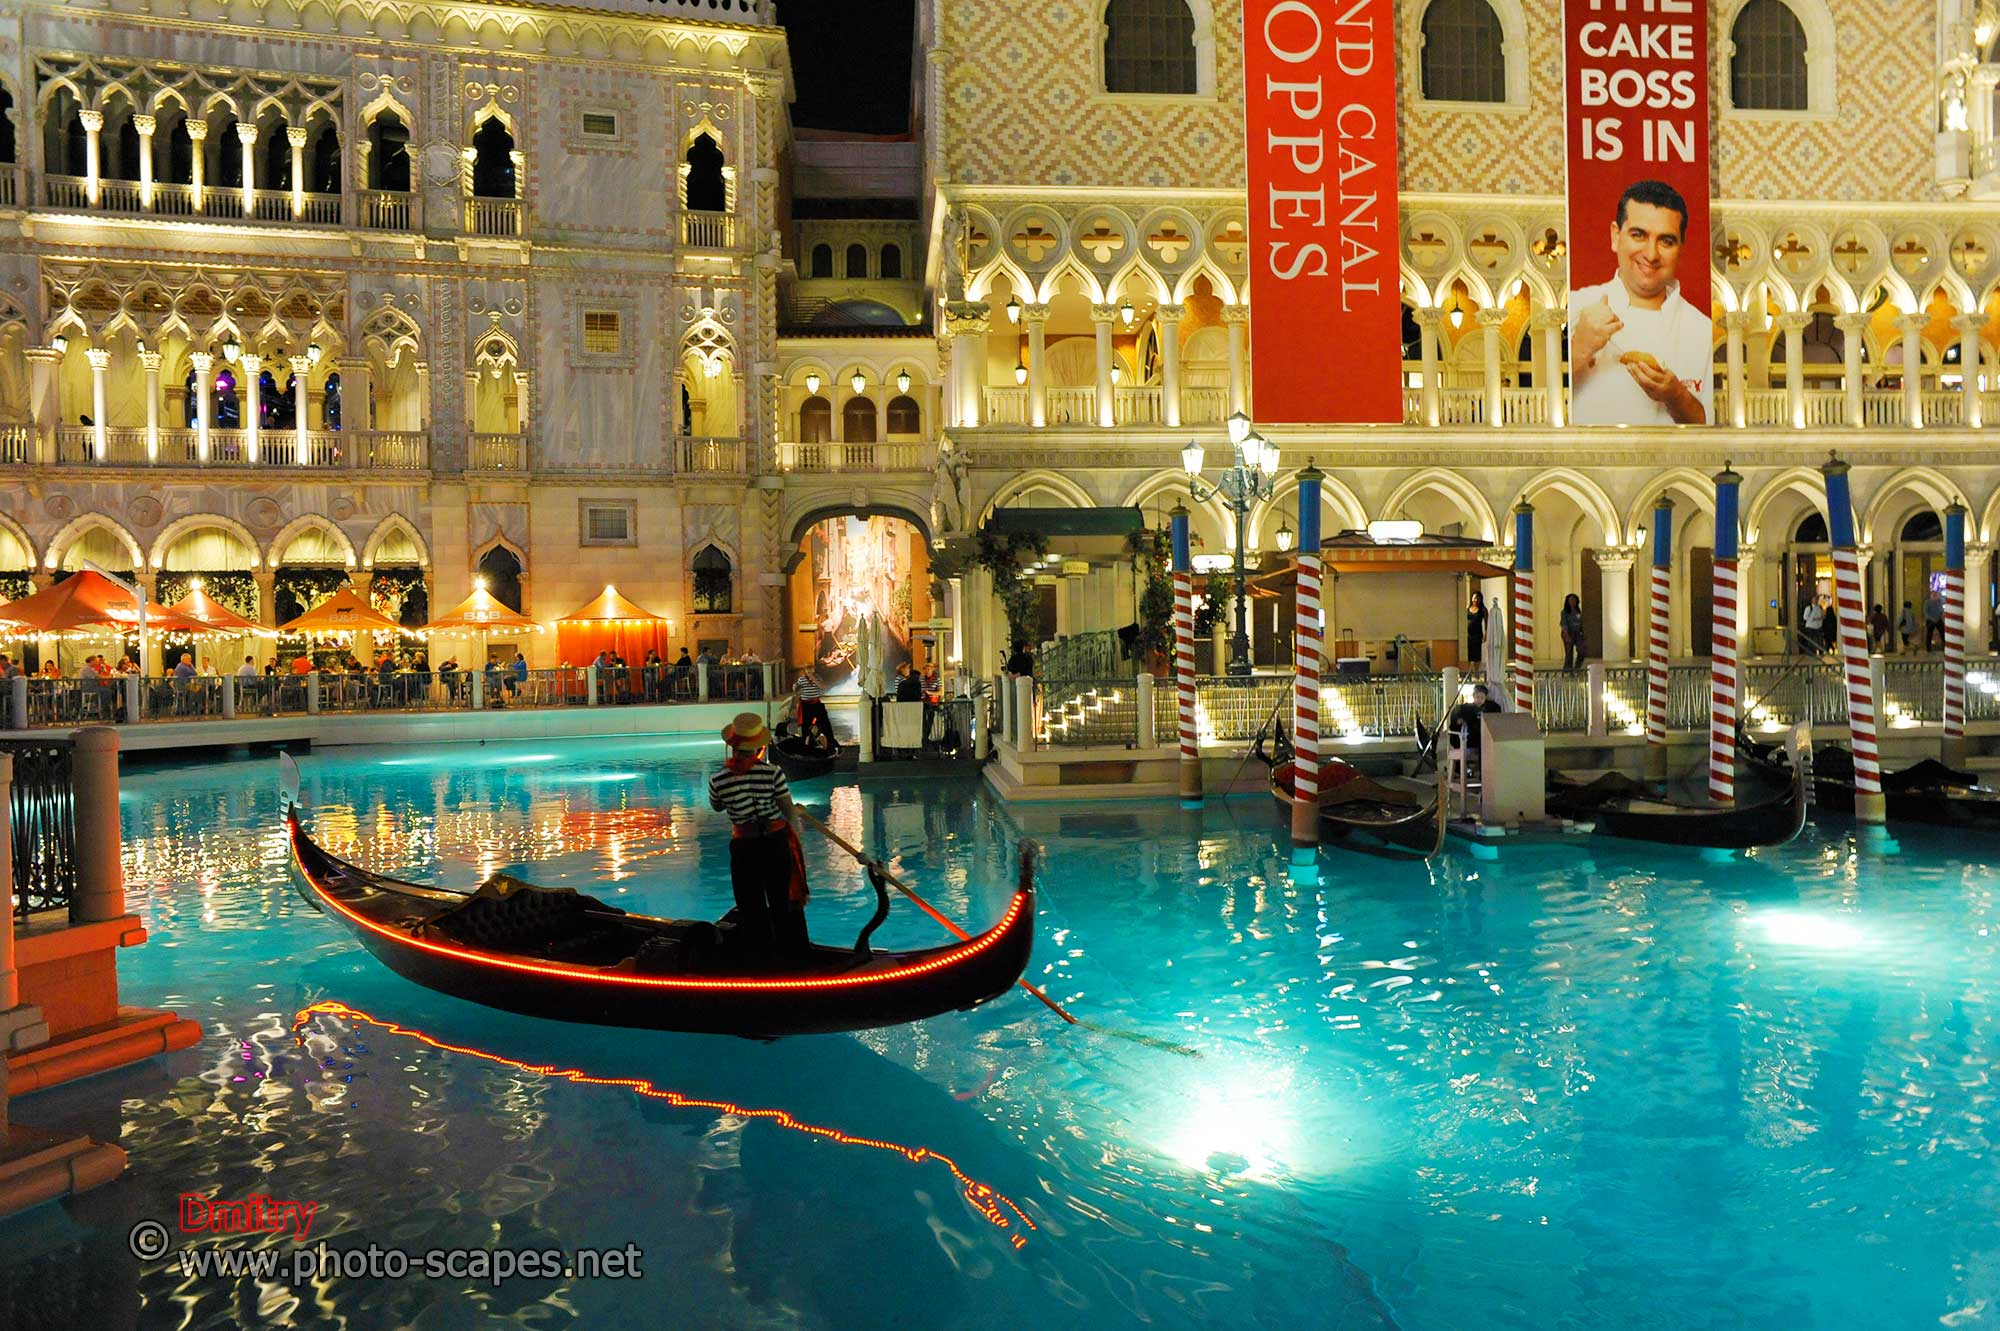 The Venetian Hotel & Casino, Las Vegas